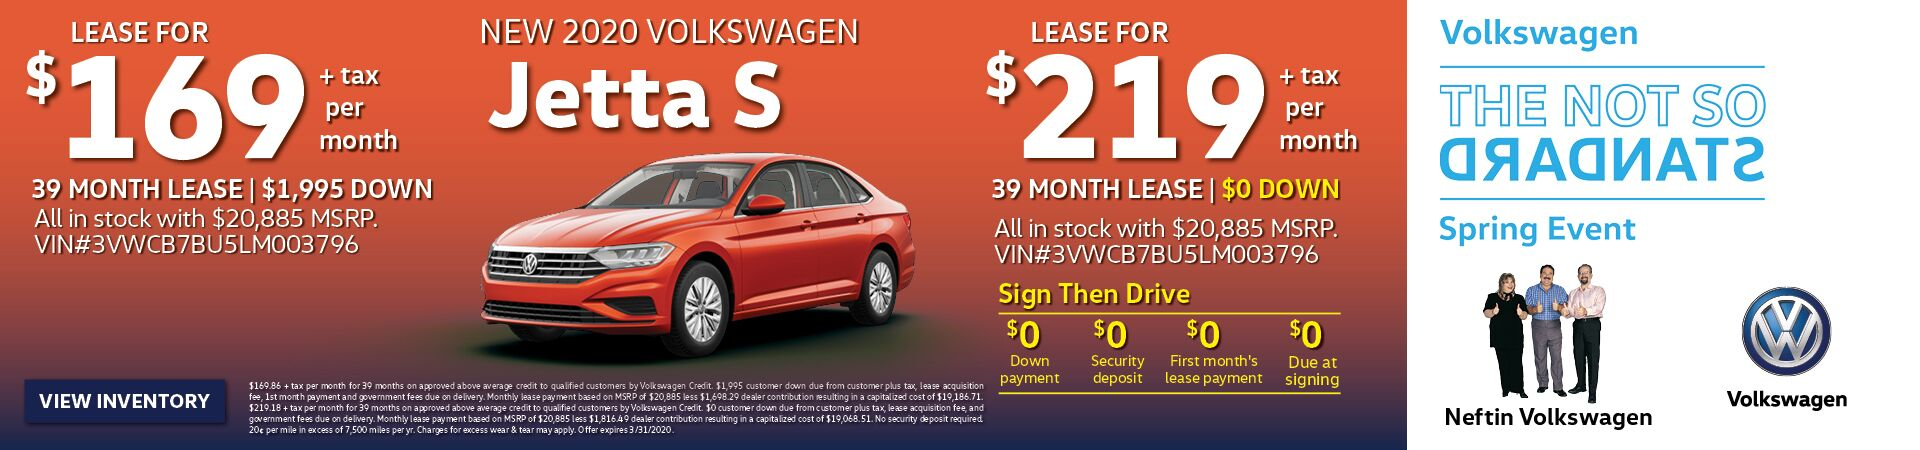 March/April '20 Jetta Lease Offer